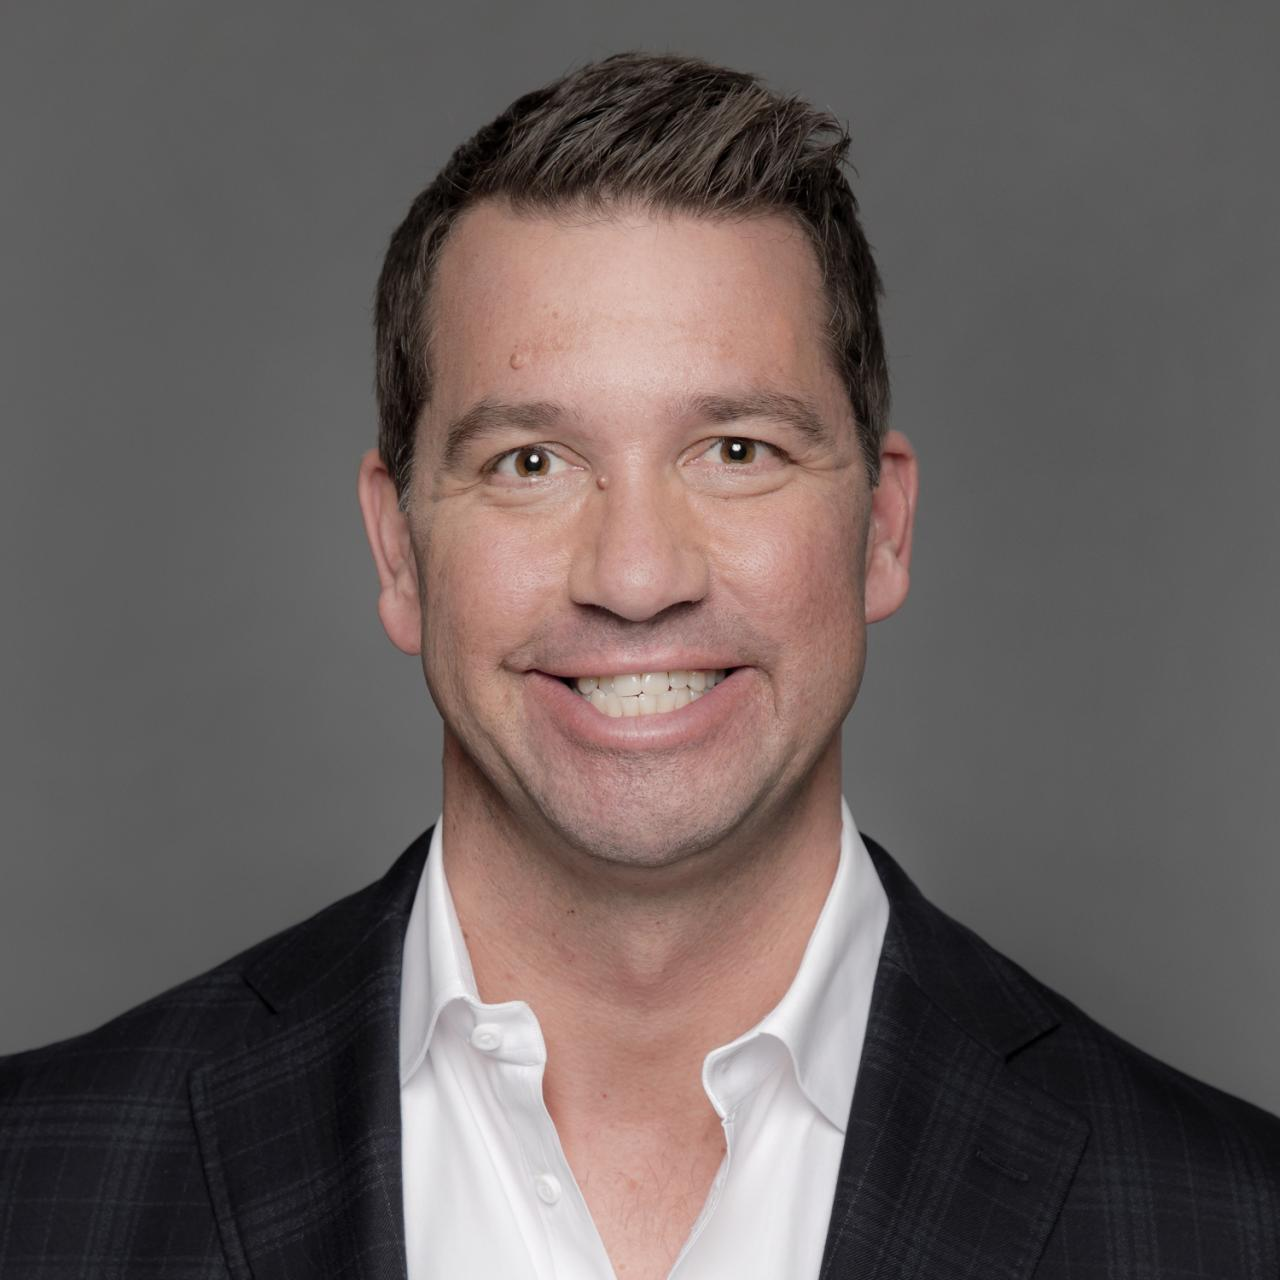 Josh Kuehnbaum, Senior Vice President, Foodservice Sales and Marketing